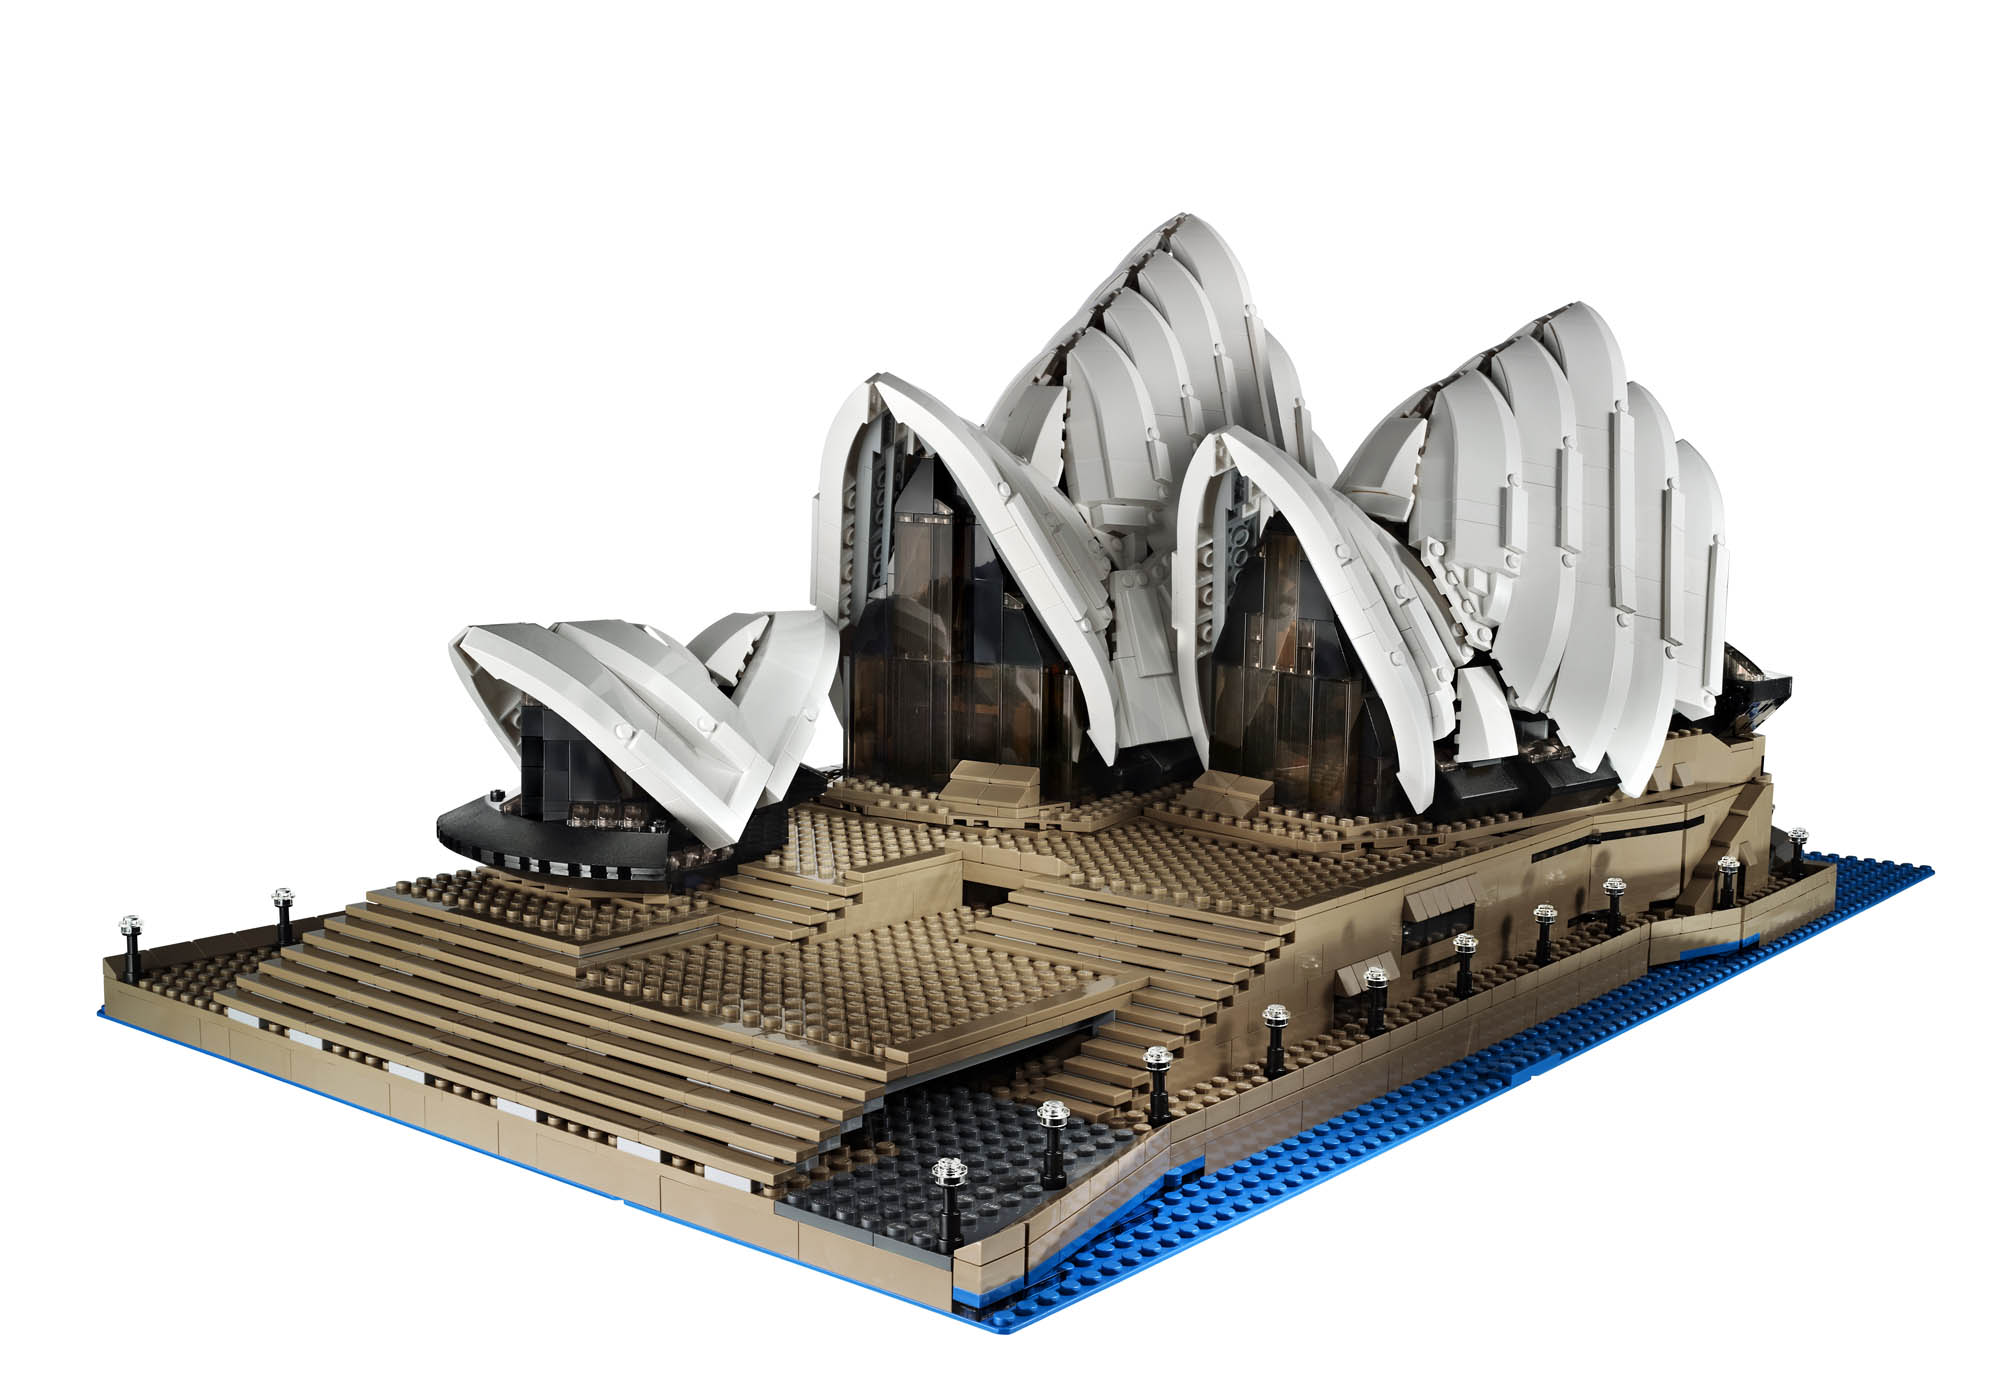 Lego set #10234 - Sydney Opera House